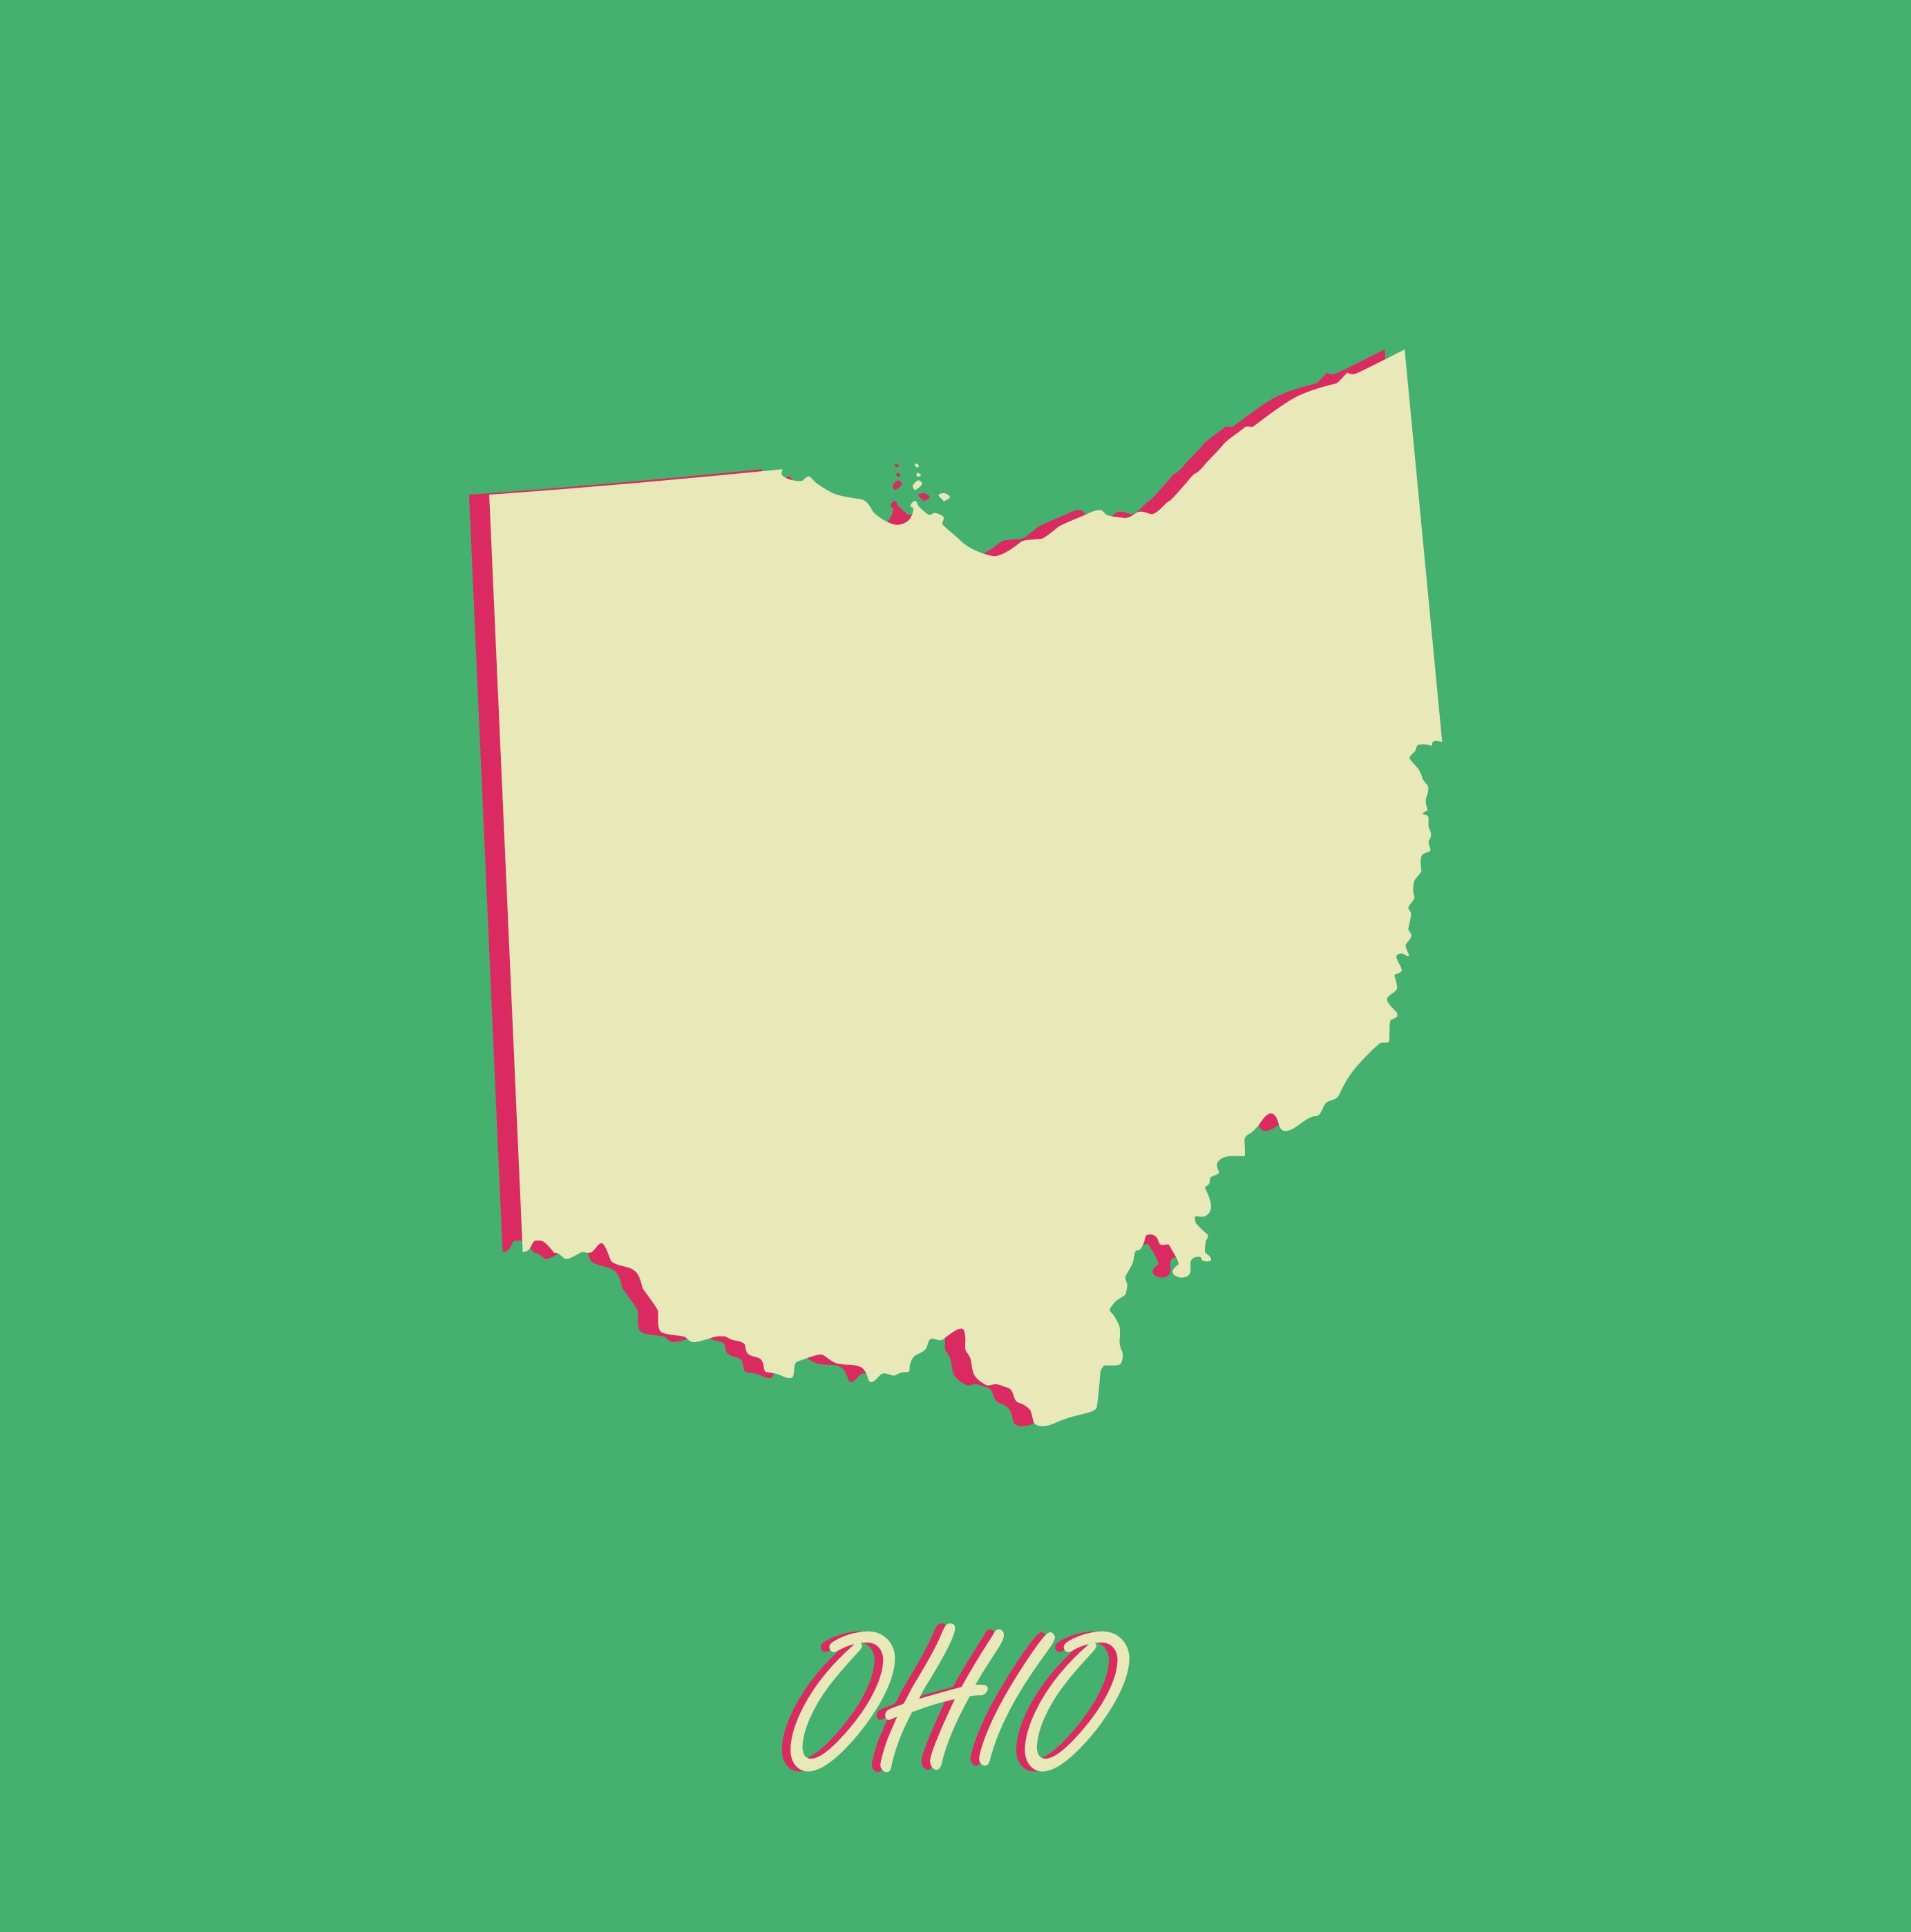 Ohio Tax & Labor Law Summary - Care com HomePay